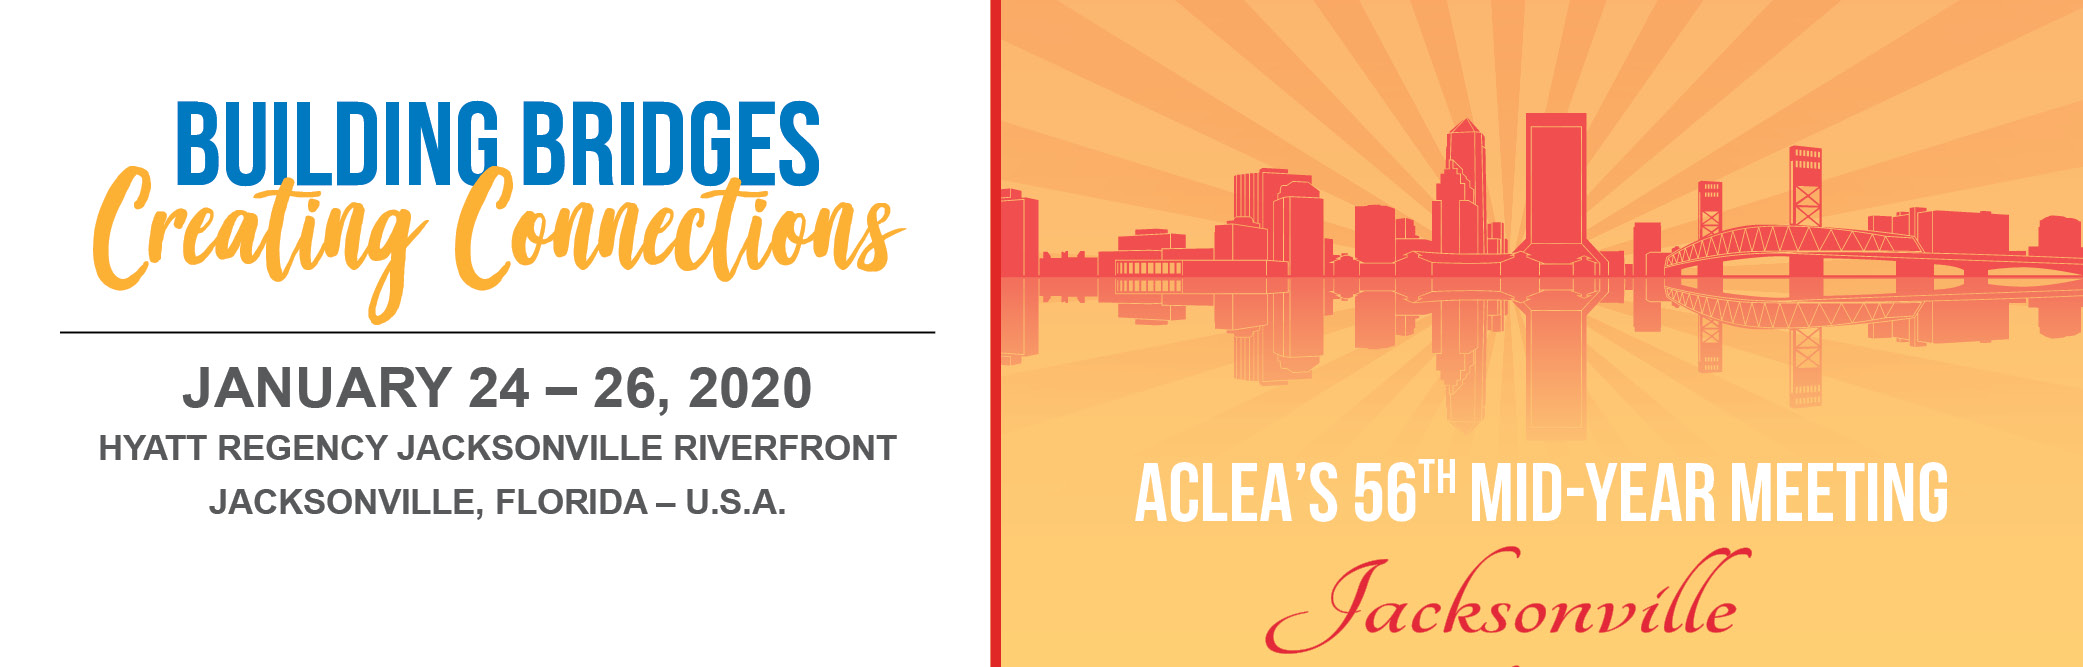 ACLEA's 56th Mid-Year Meeting in Jacksonville, Florida